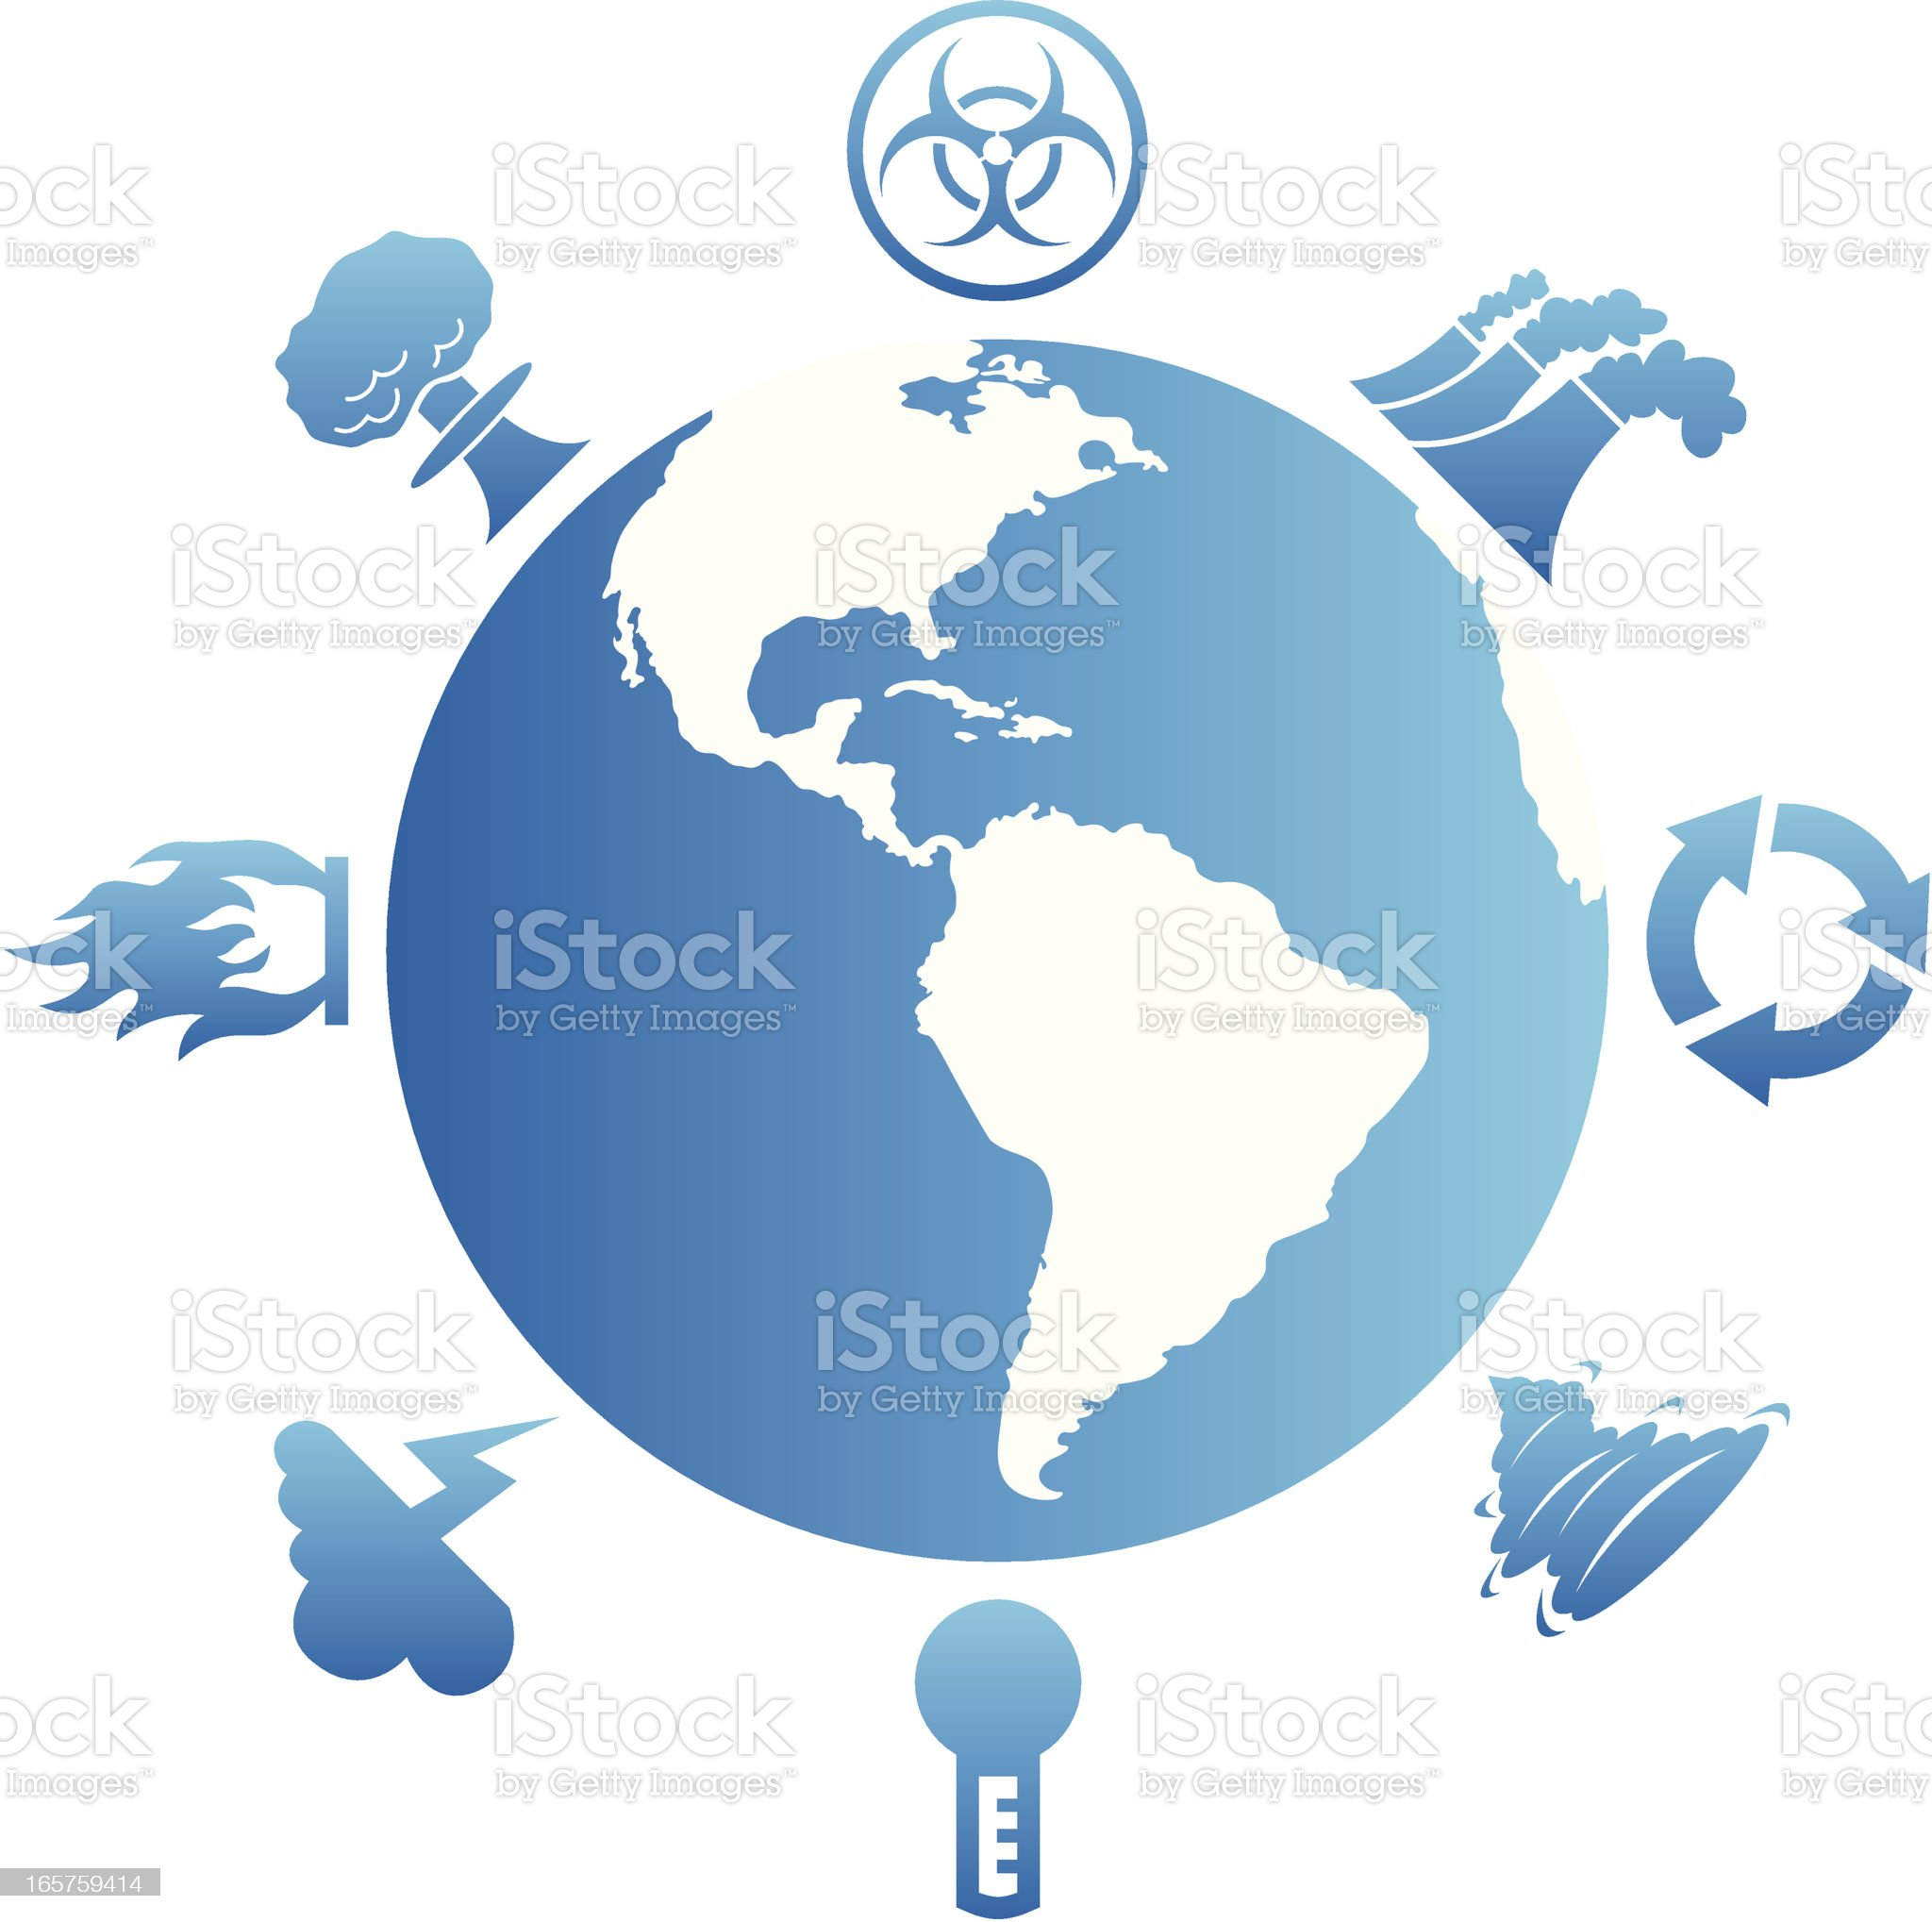 Global Issues & Disasters royalty-free stock vector art